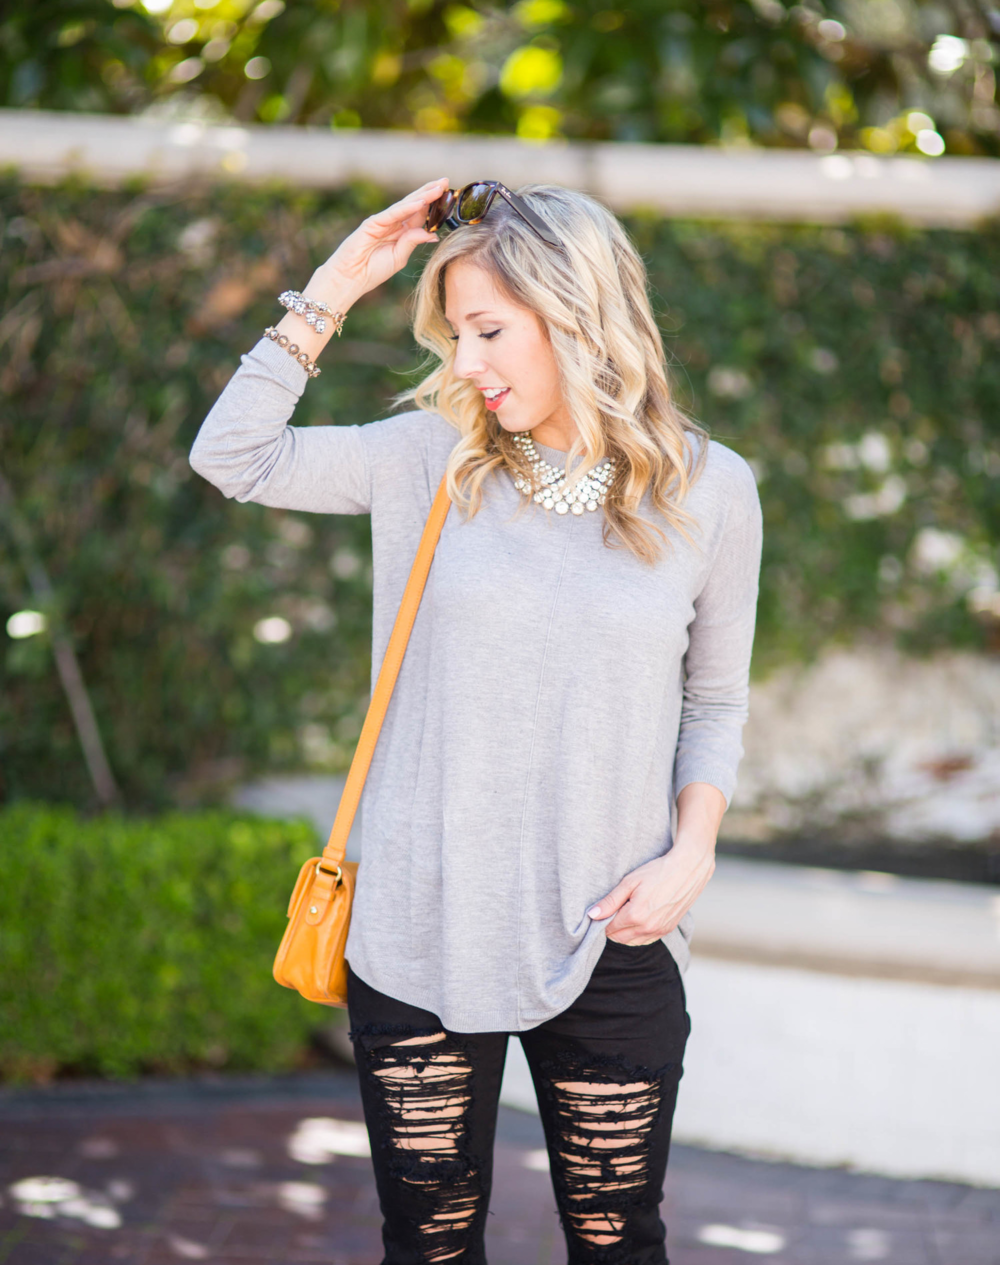 Black Distressed Jeans / Topshop / Accessory Jane Statement Necklace / Dallas Fashion Blogger